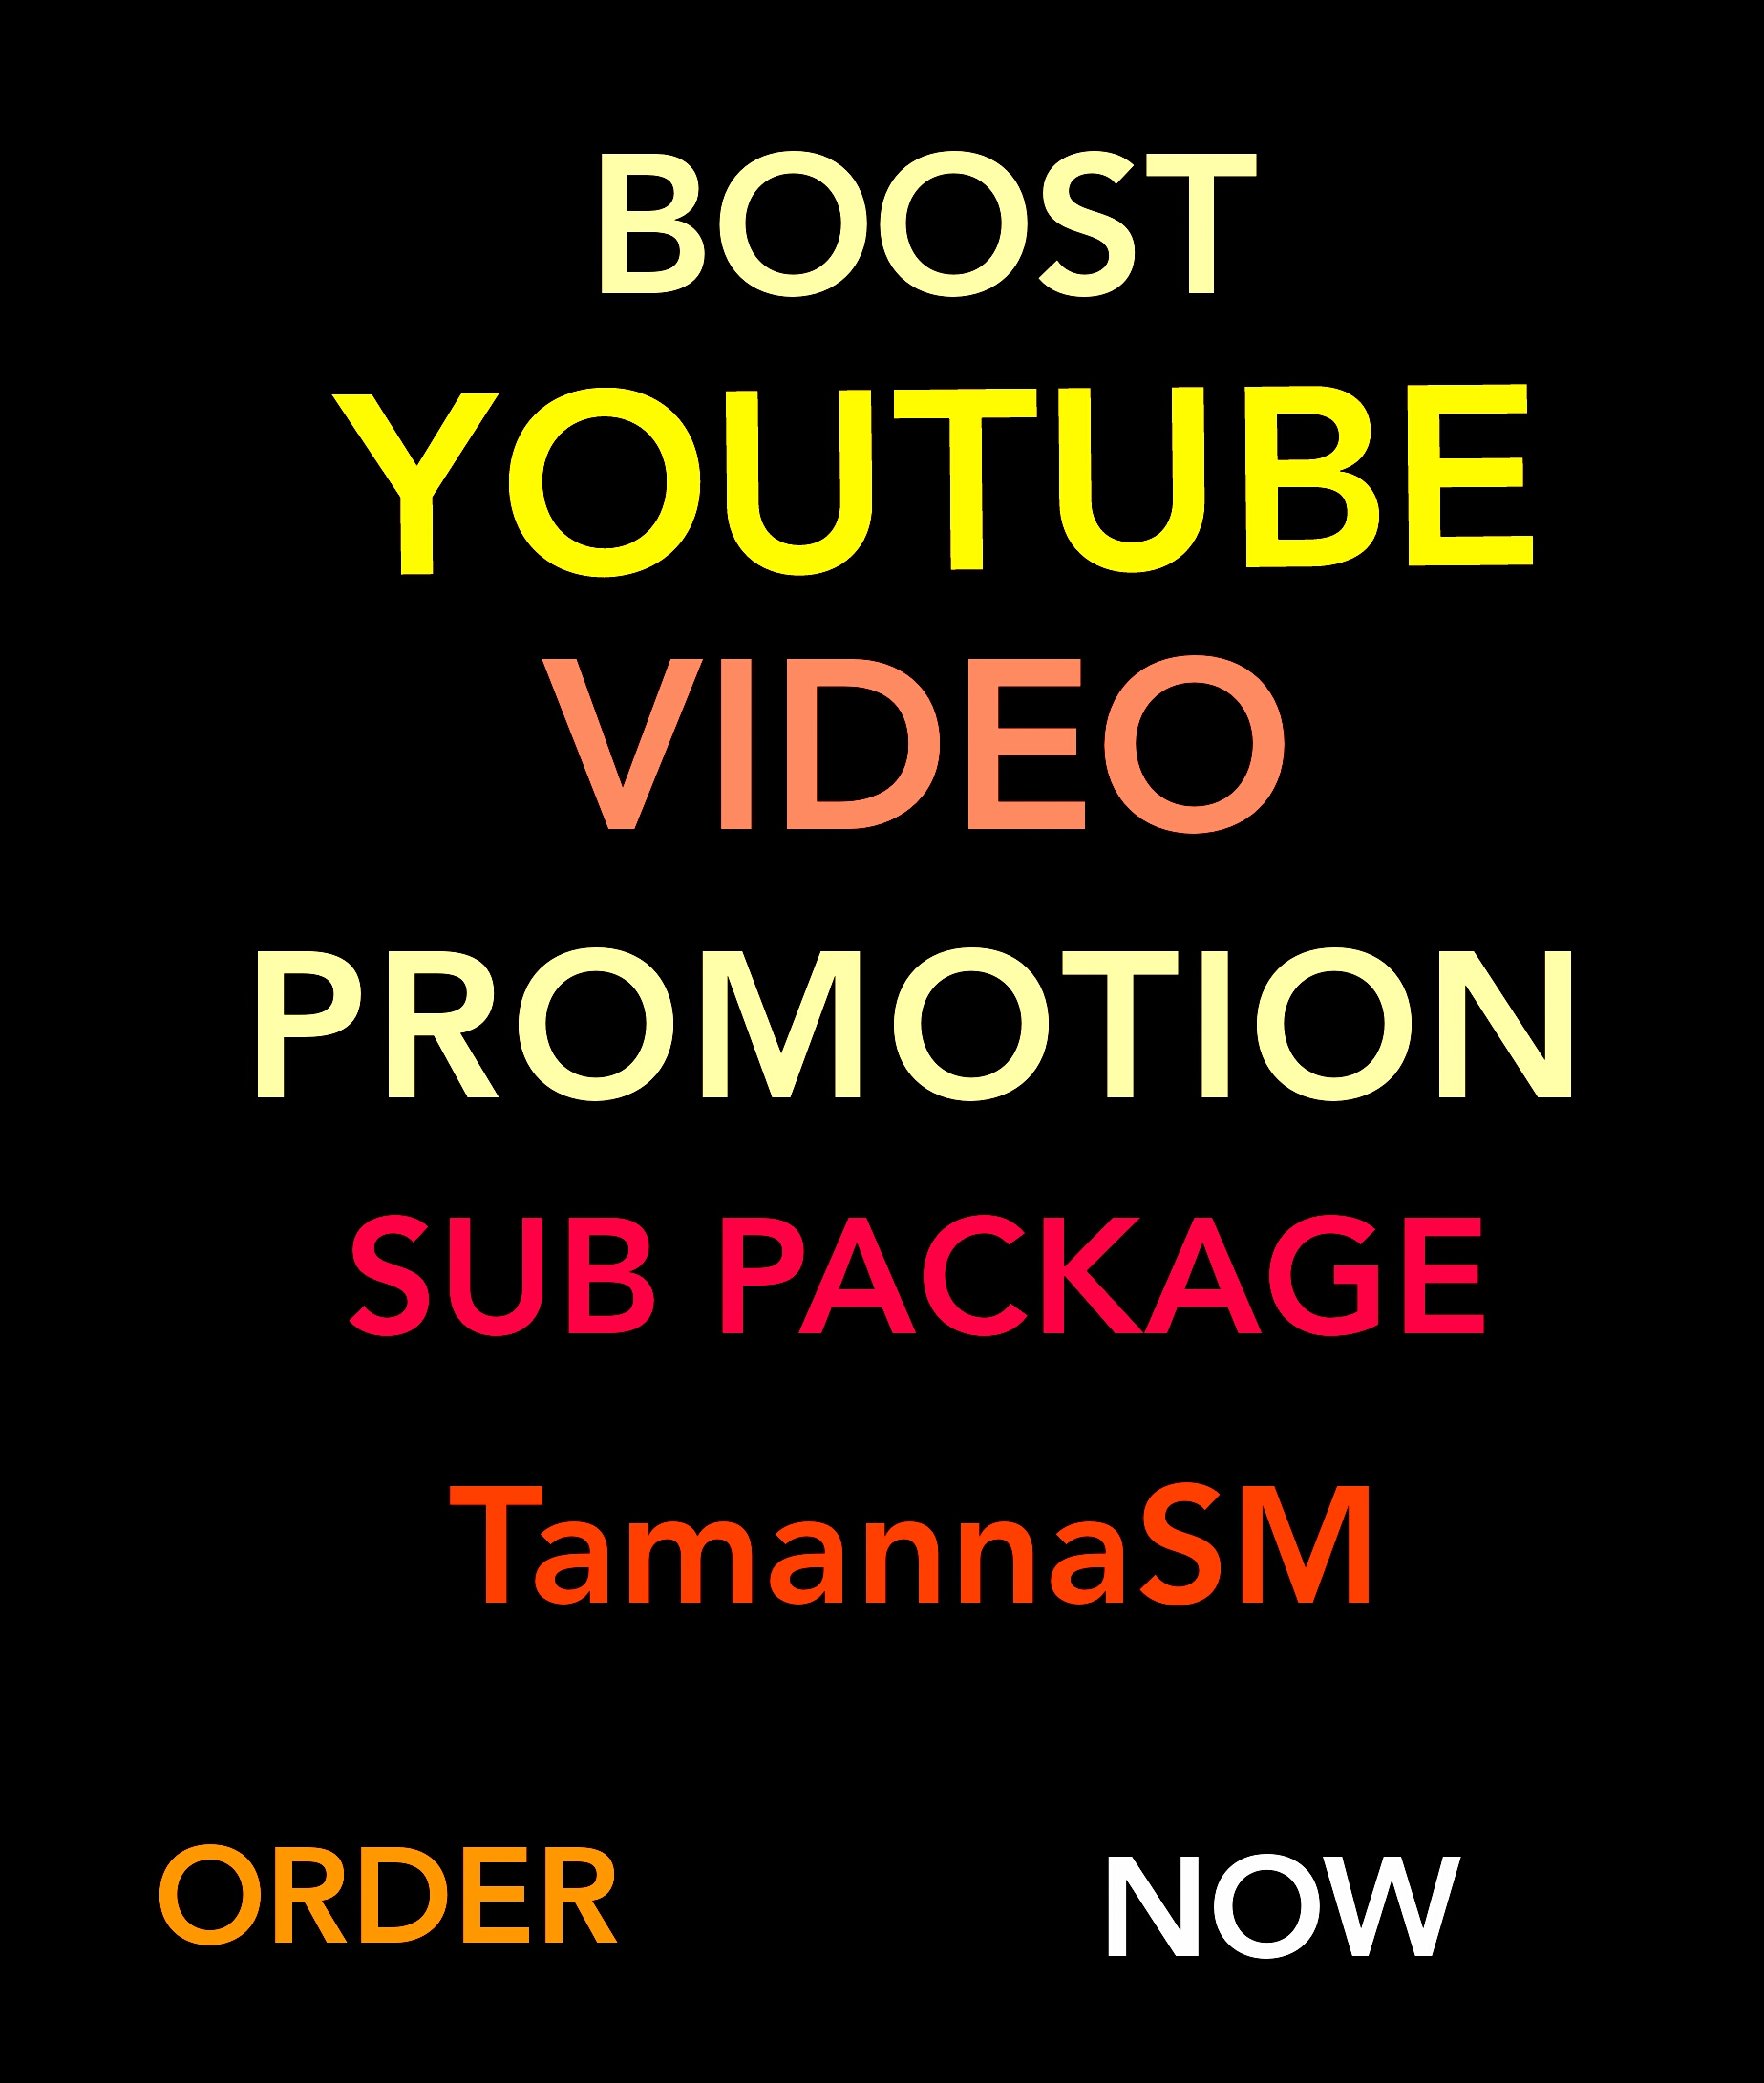 SUB PACKAGE HIGH QUALITY YOUBE VIDEO PROMOTION AND SICIAL MEDIA MARKETING